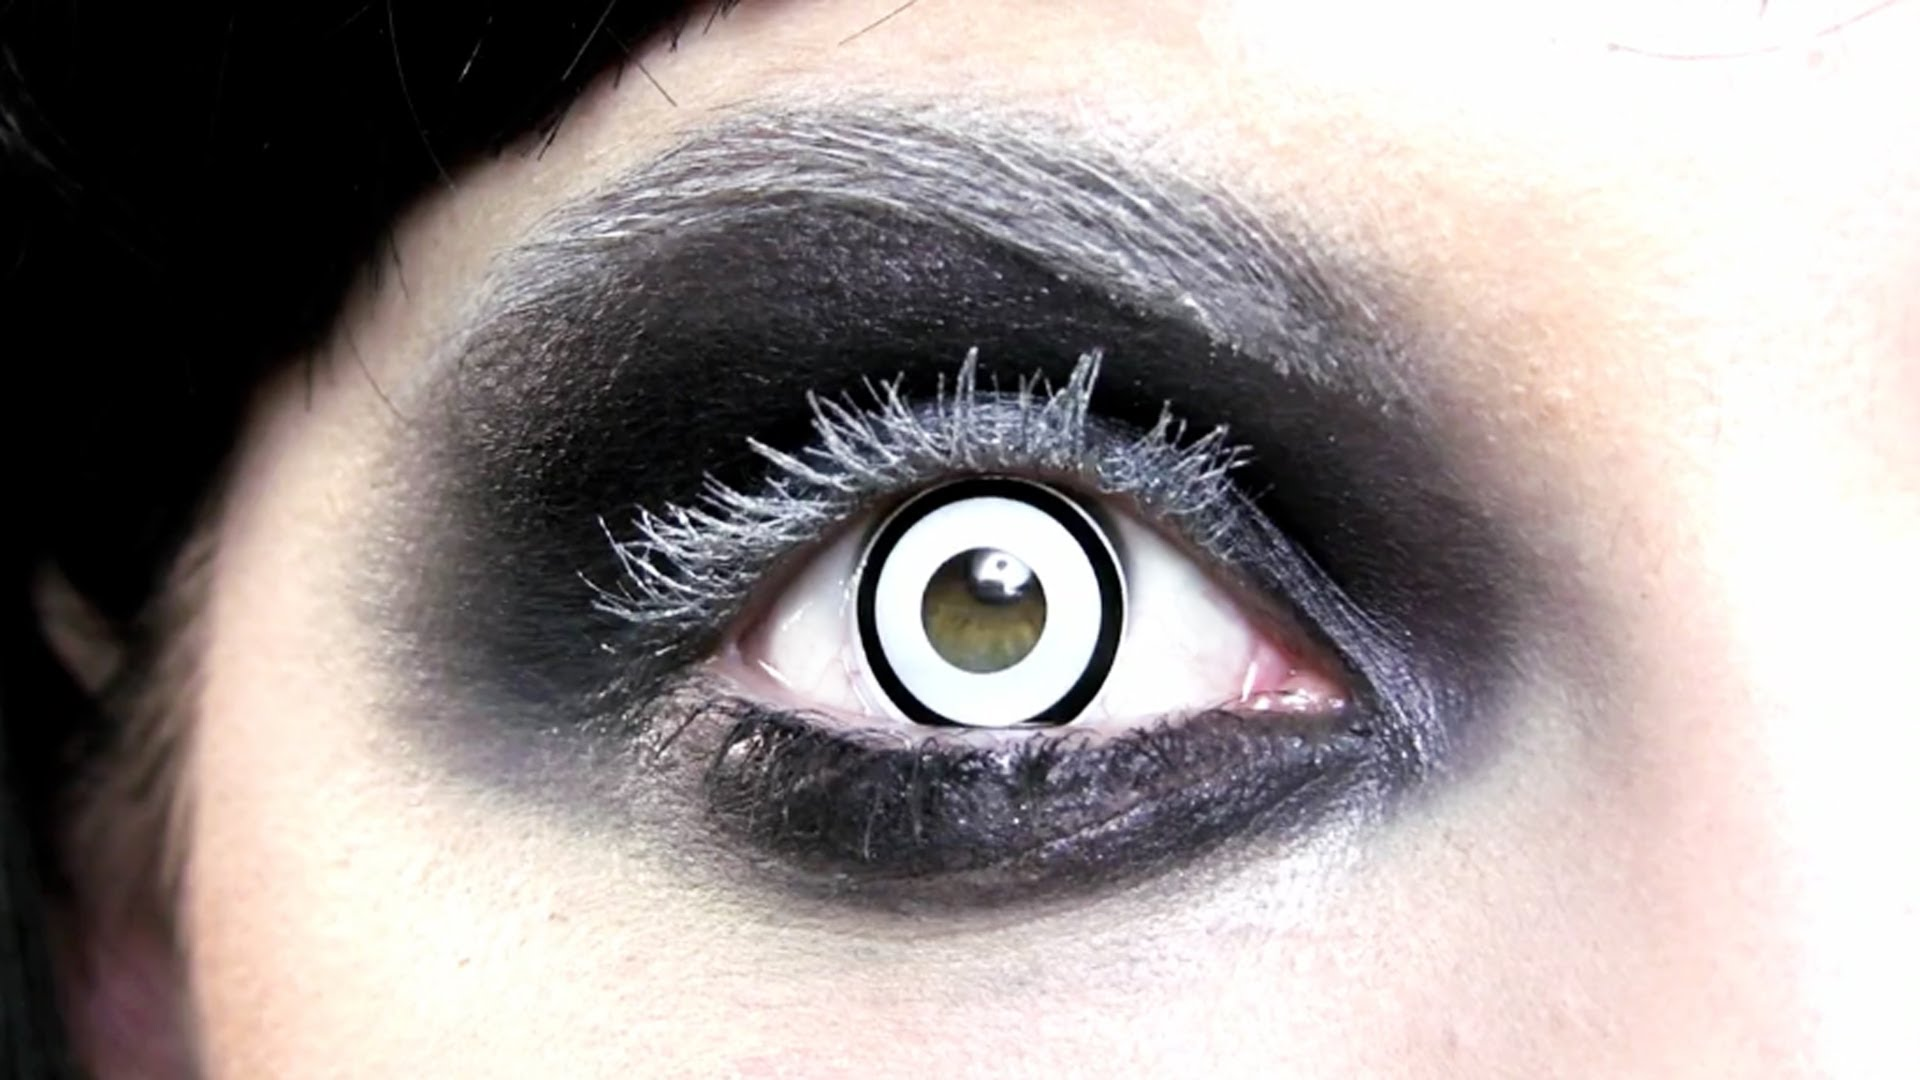 manson_halloween_contact_lenses_costumes_and_masks_2.jpg